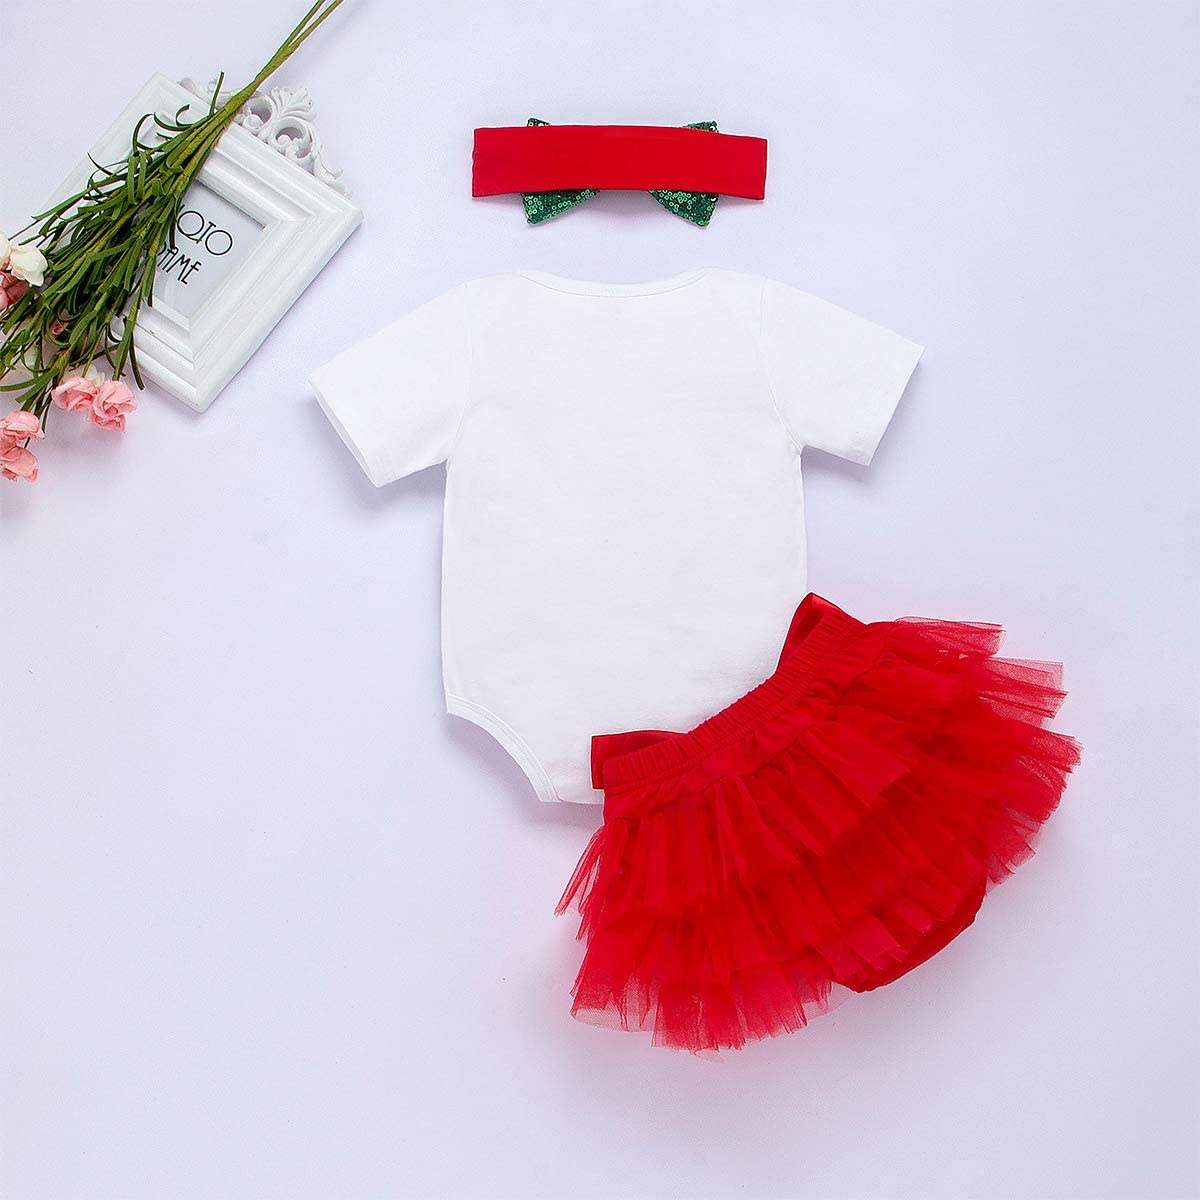 Tutu di Pizzo Gonne Abito Outfit jsadfojas My 1st Christmas Toddler Infant Newborn Baby Girls Vestiti Pagliaccetto Top